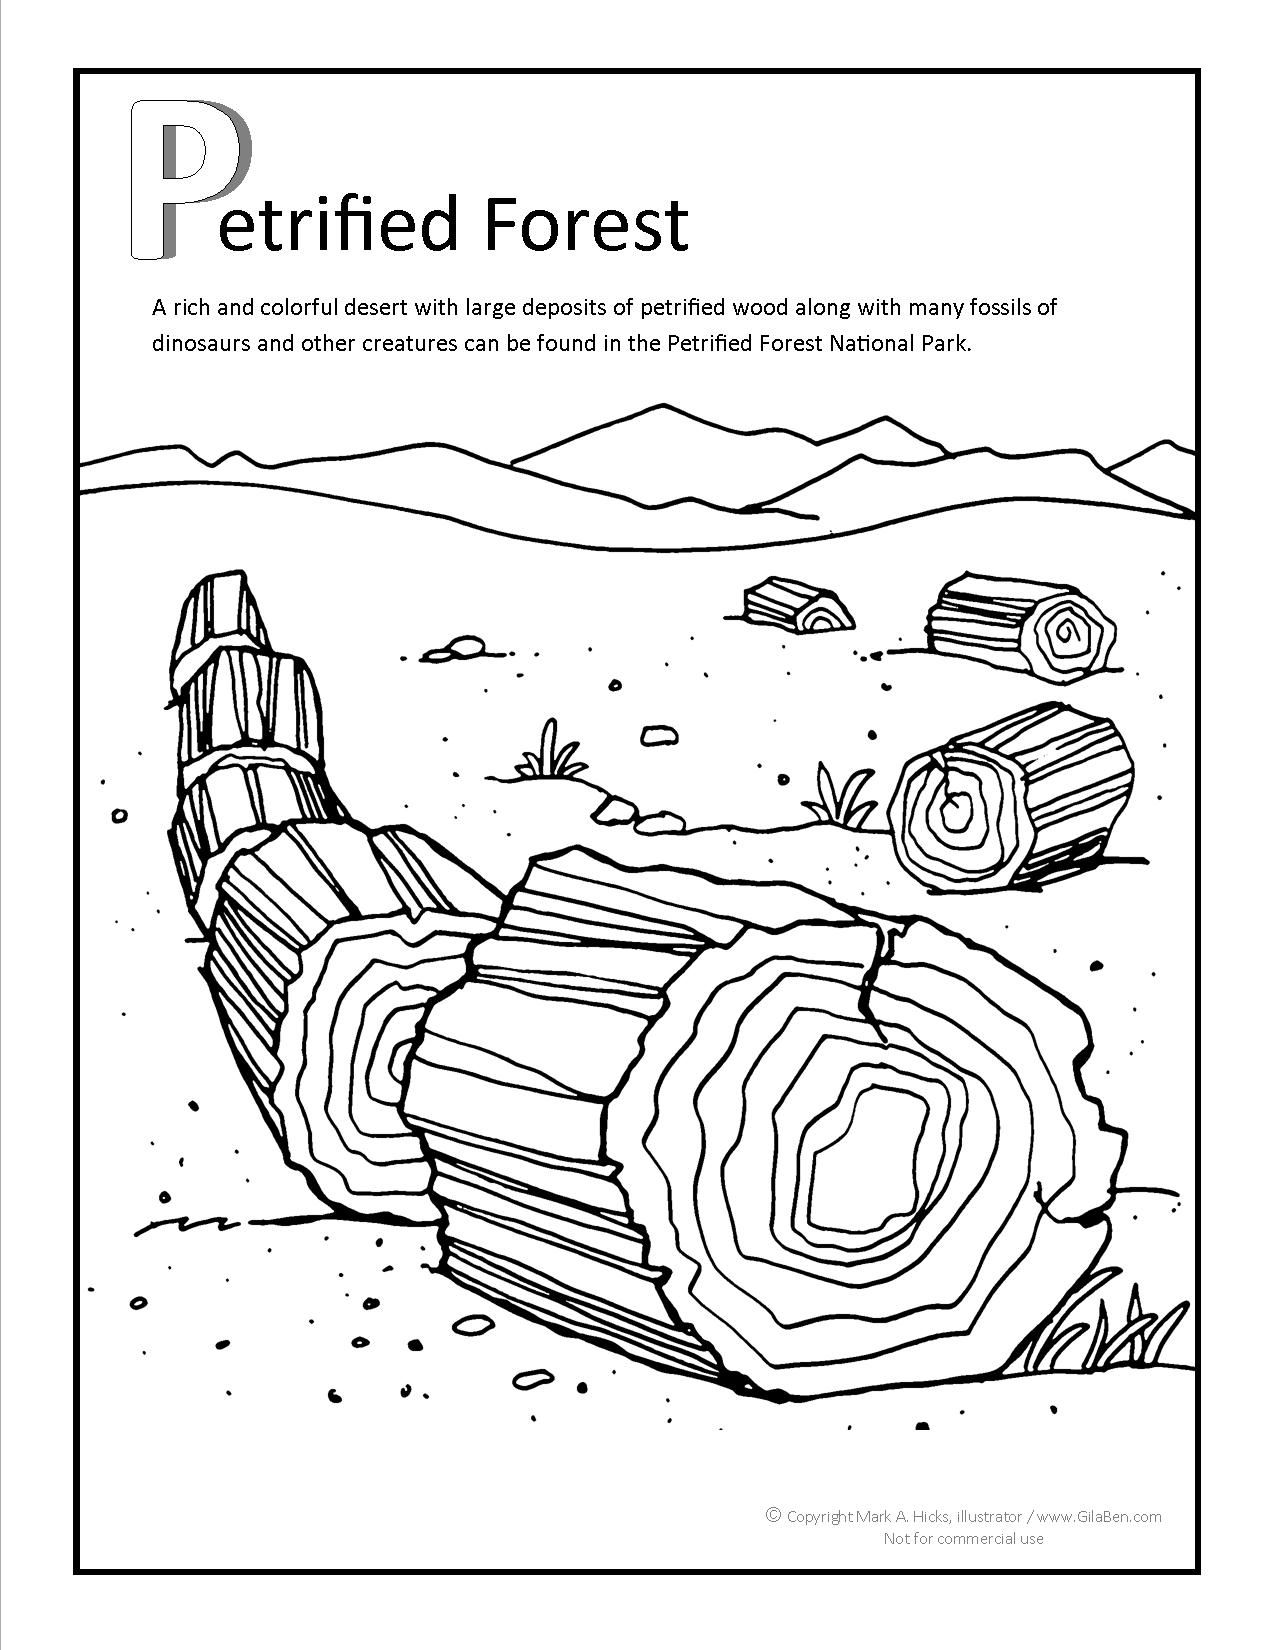 petrified forest coloring page more fun printable coloring pages